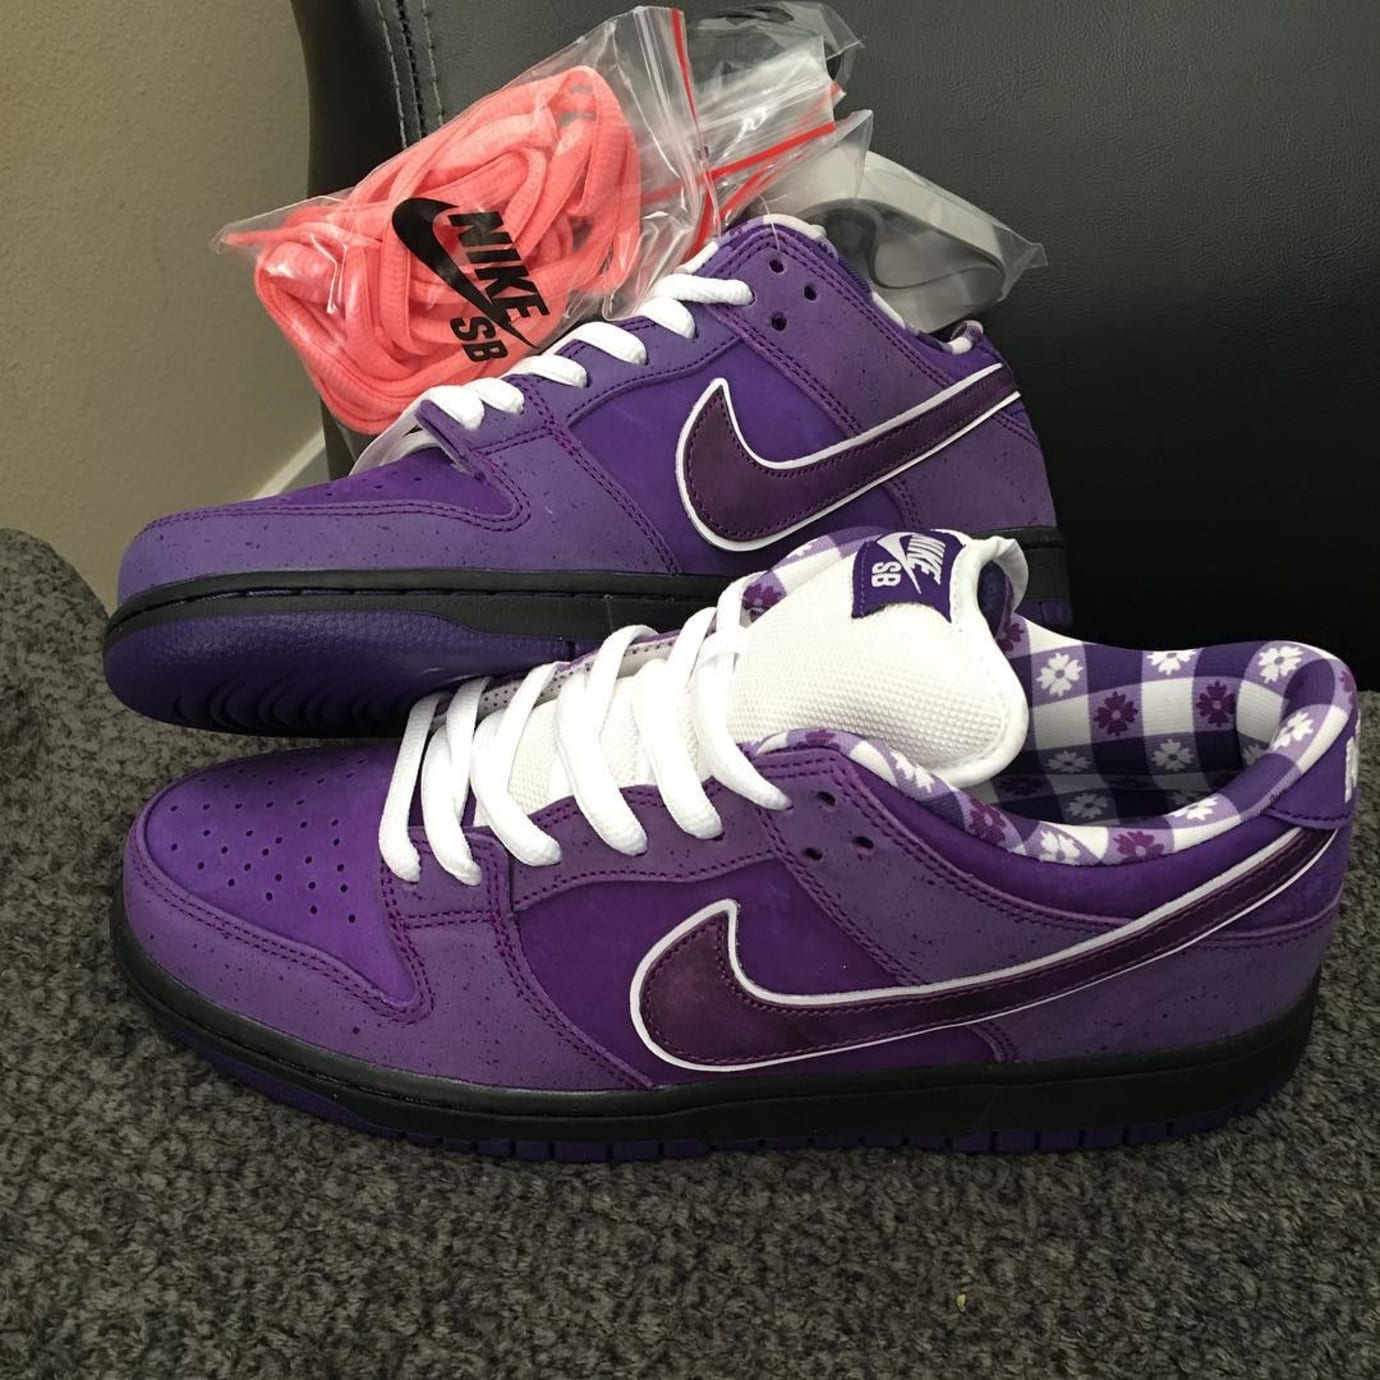 Concepts x Nike SB Dunk  Purple Lobster  Release Date  fd0a59473